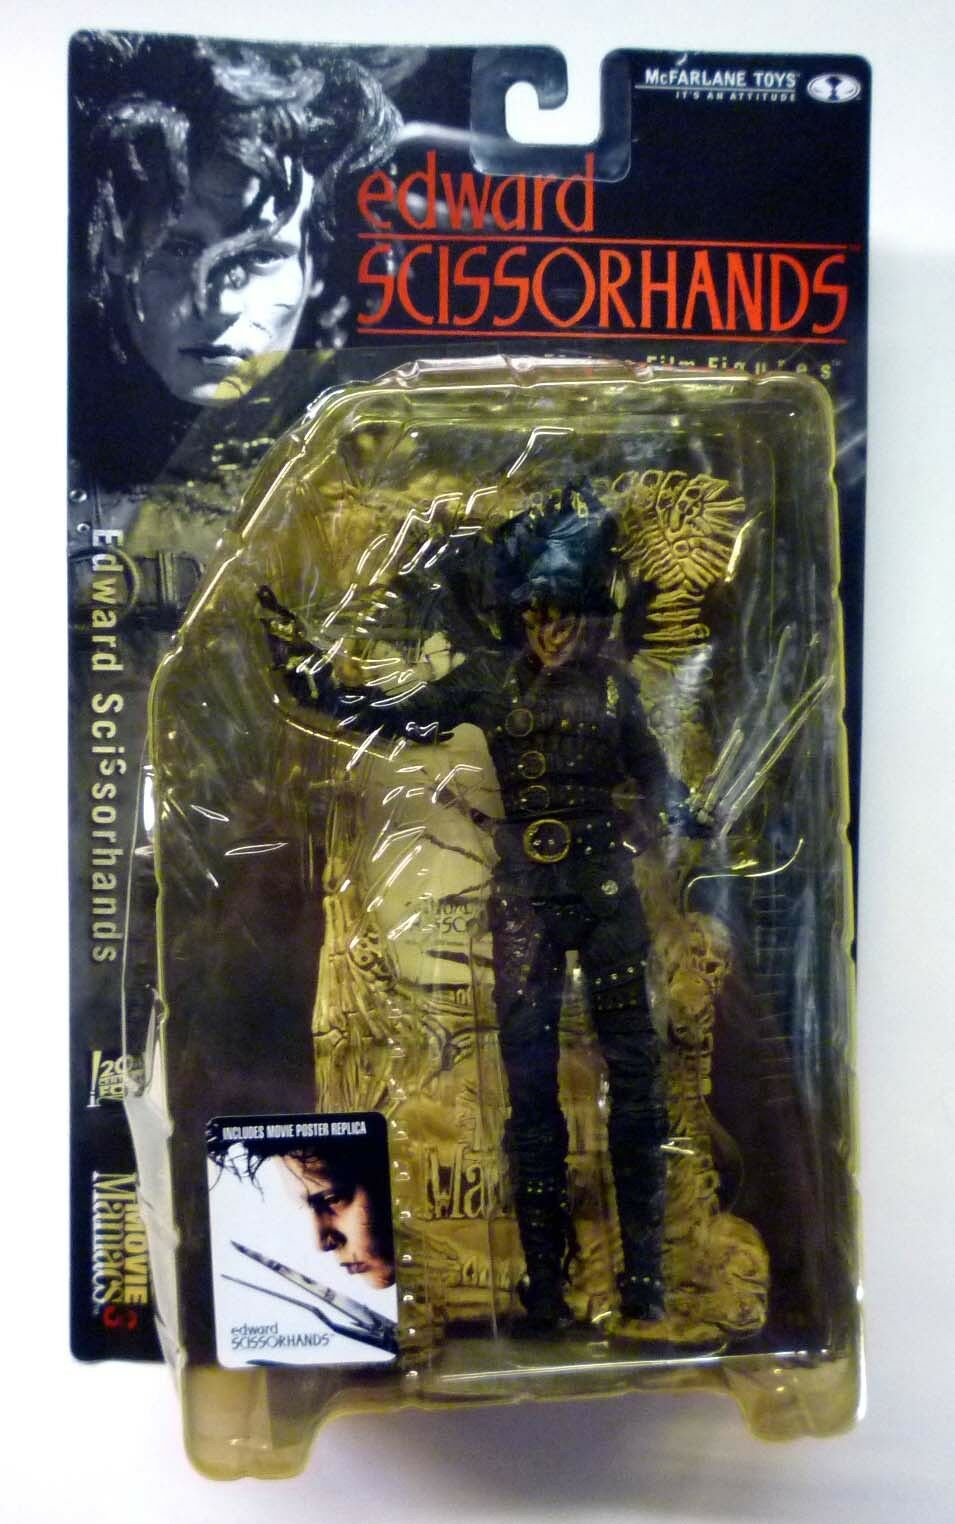 McFarlane Toys Toys Toys Movie Maniacs Series 3 Edward Scissorhands Johnny Depp New 2000 602663